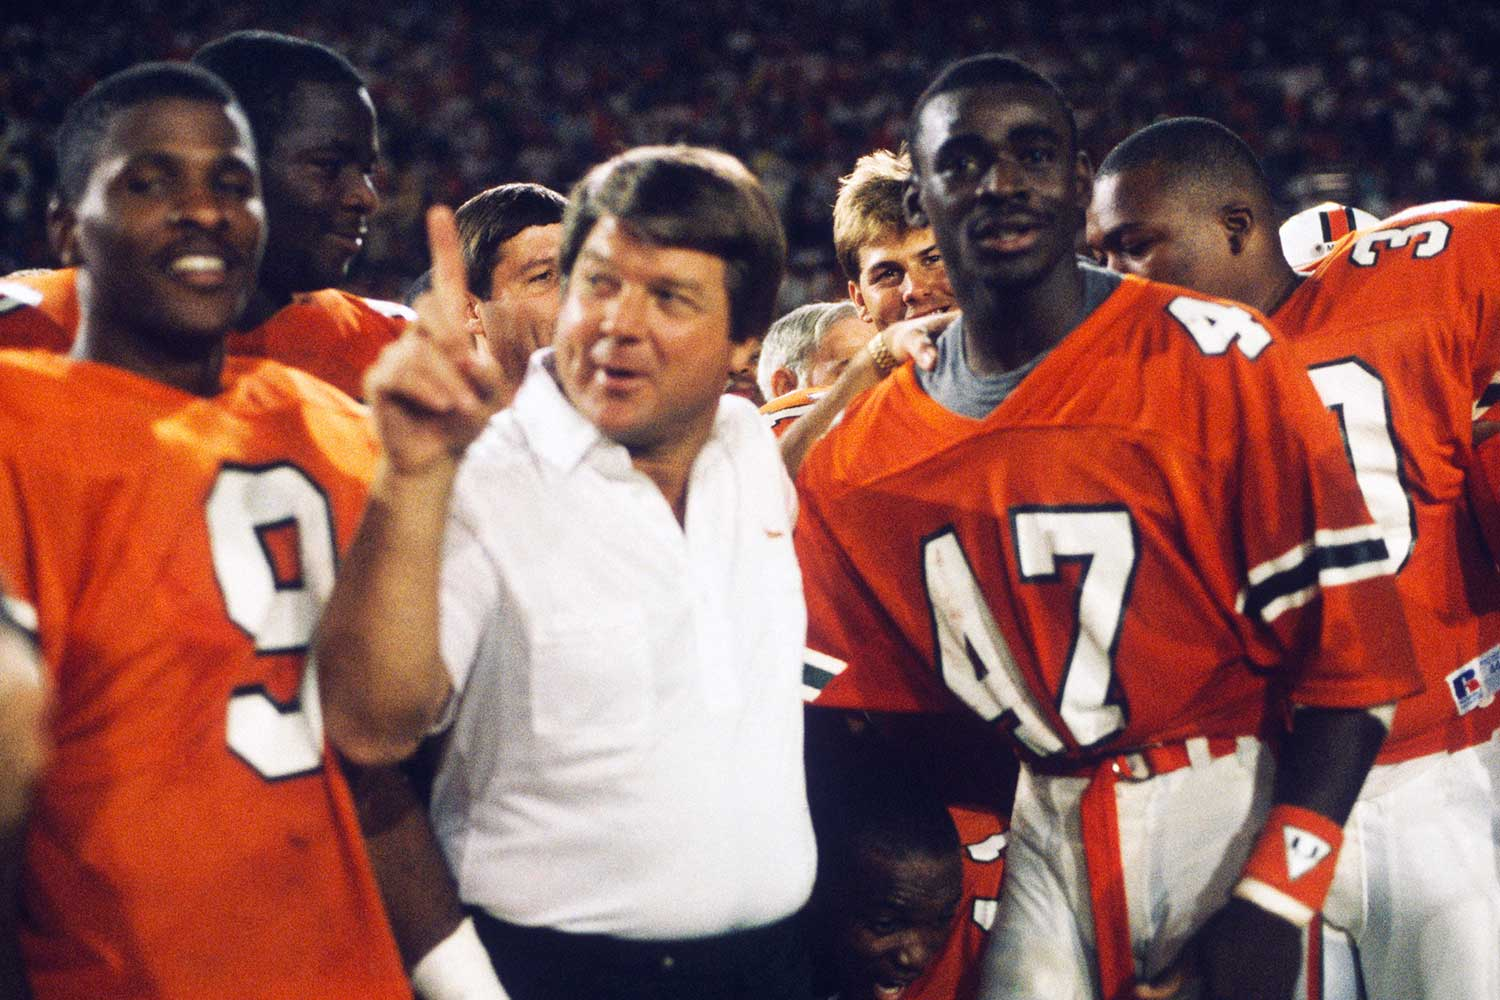 Jimmy Johnson and Michael Irvin